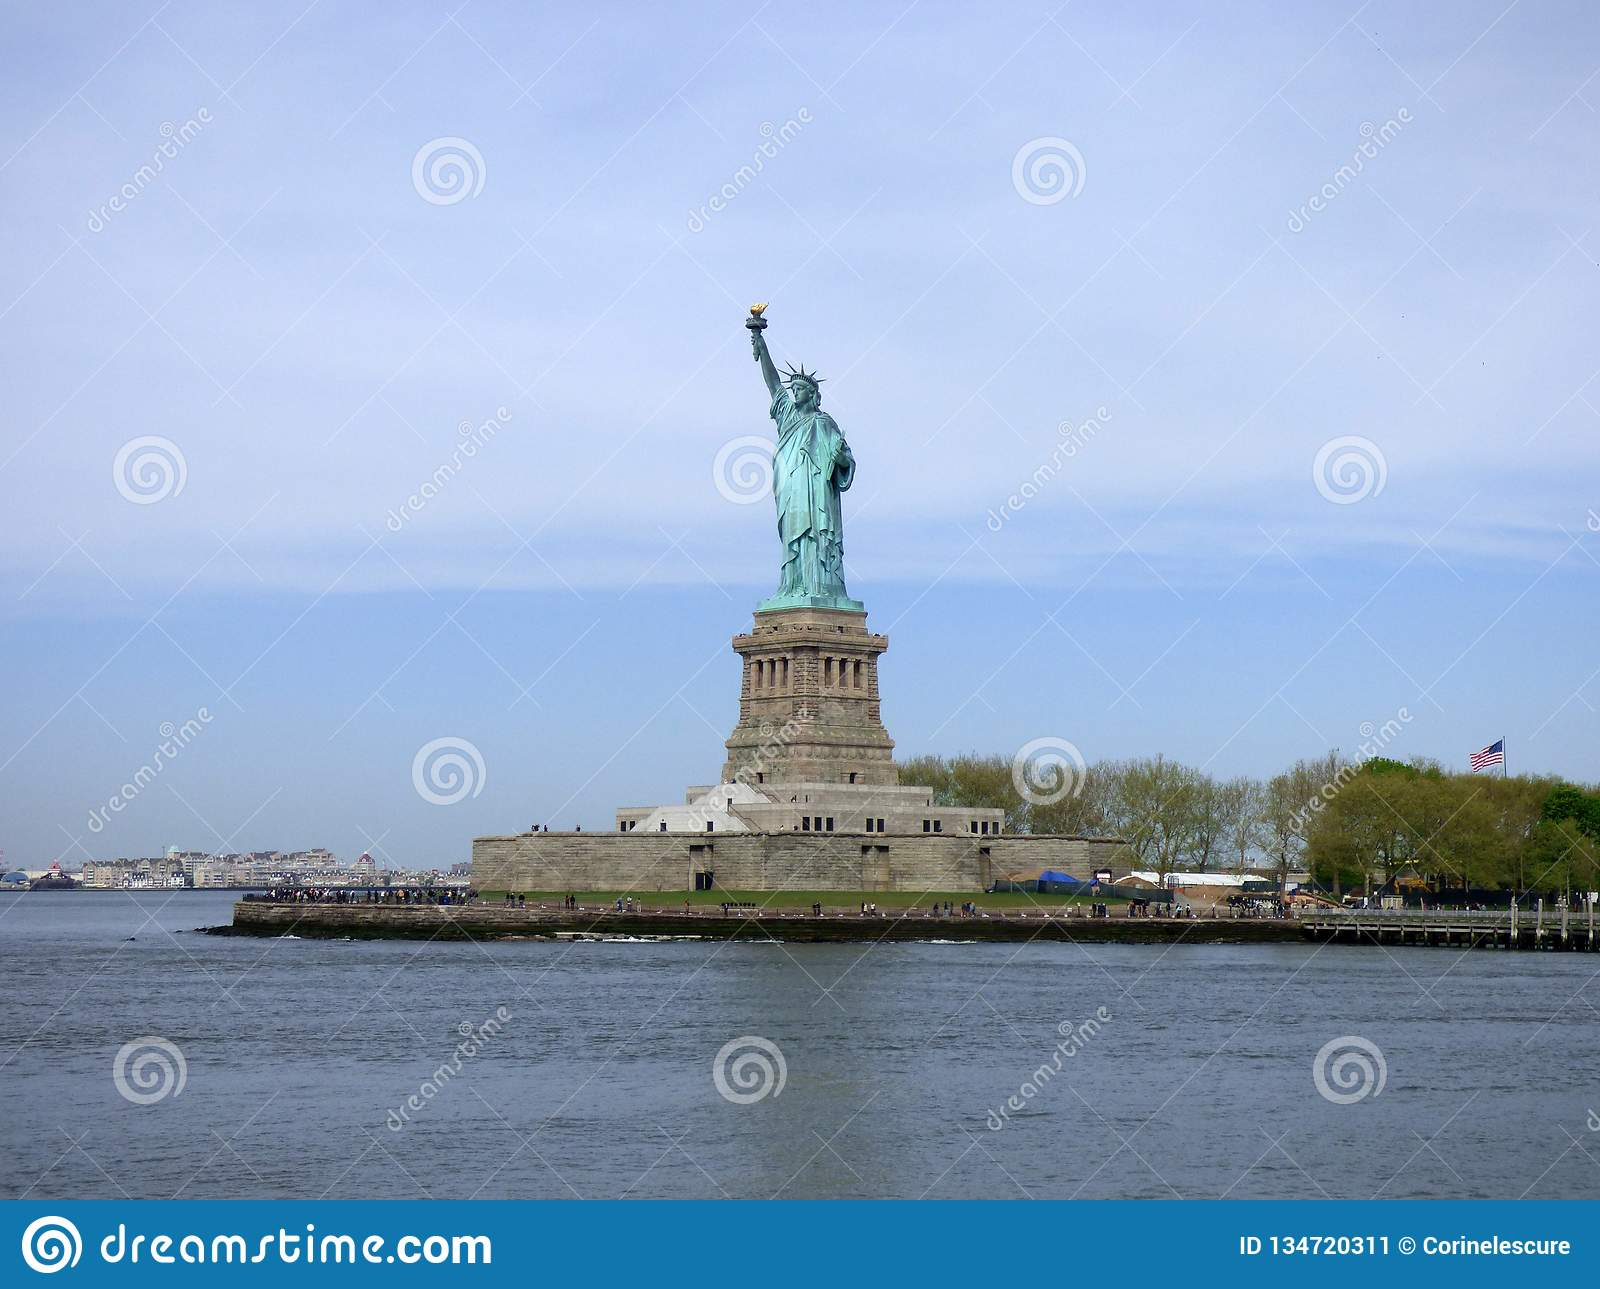 USA New York city liberty newyork statue sunset